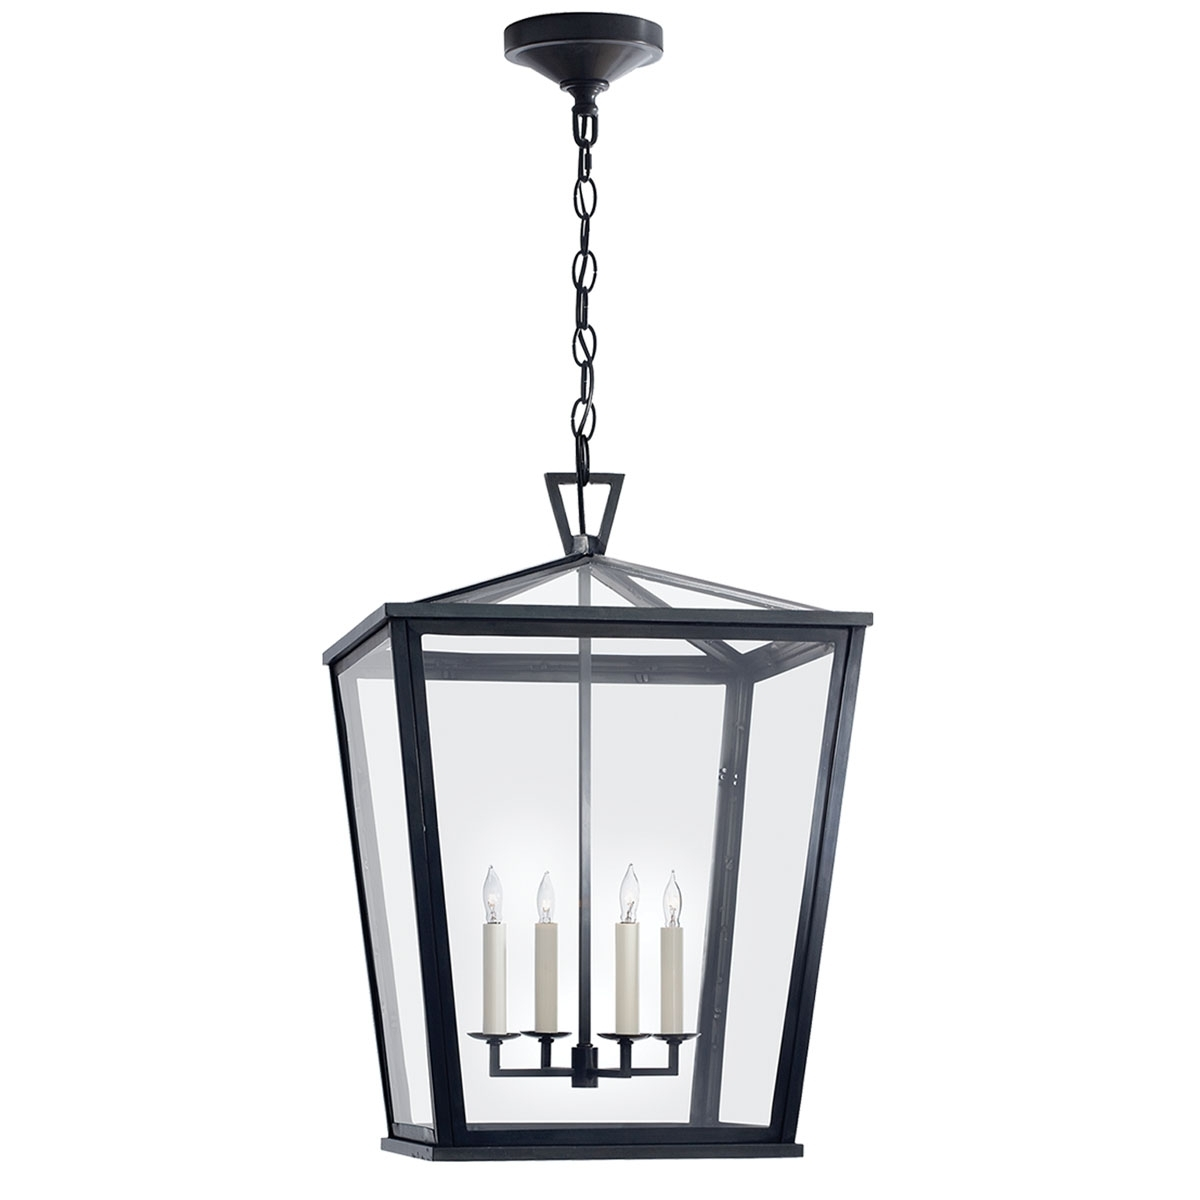 Large Outdoor Hanging Lights Intended For Current Visual Comfort Darlana Large Outdoor Hanging Lantern, Outdoor (Gallery 7 of 20)